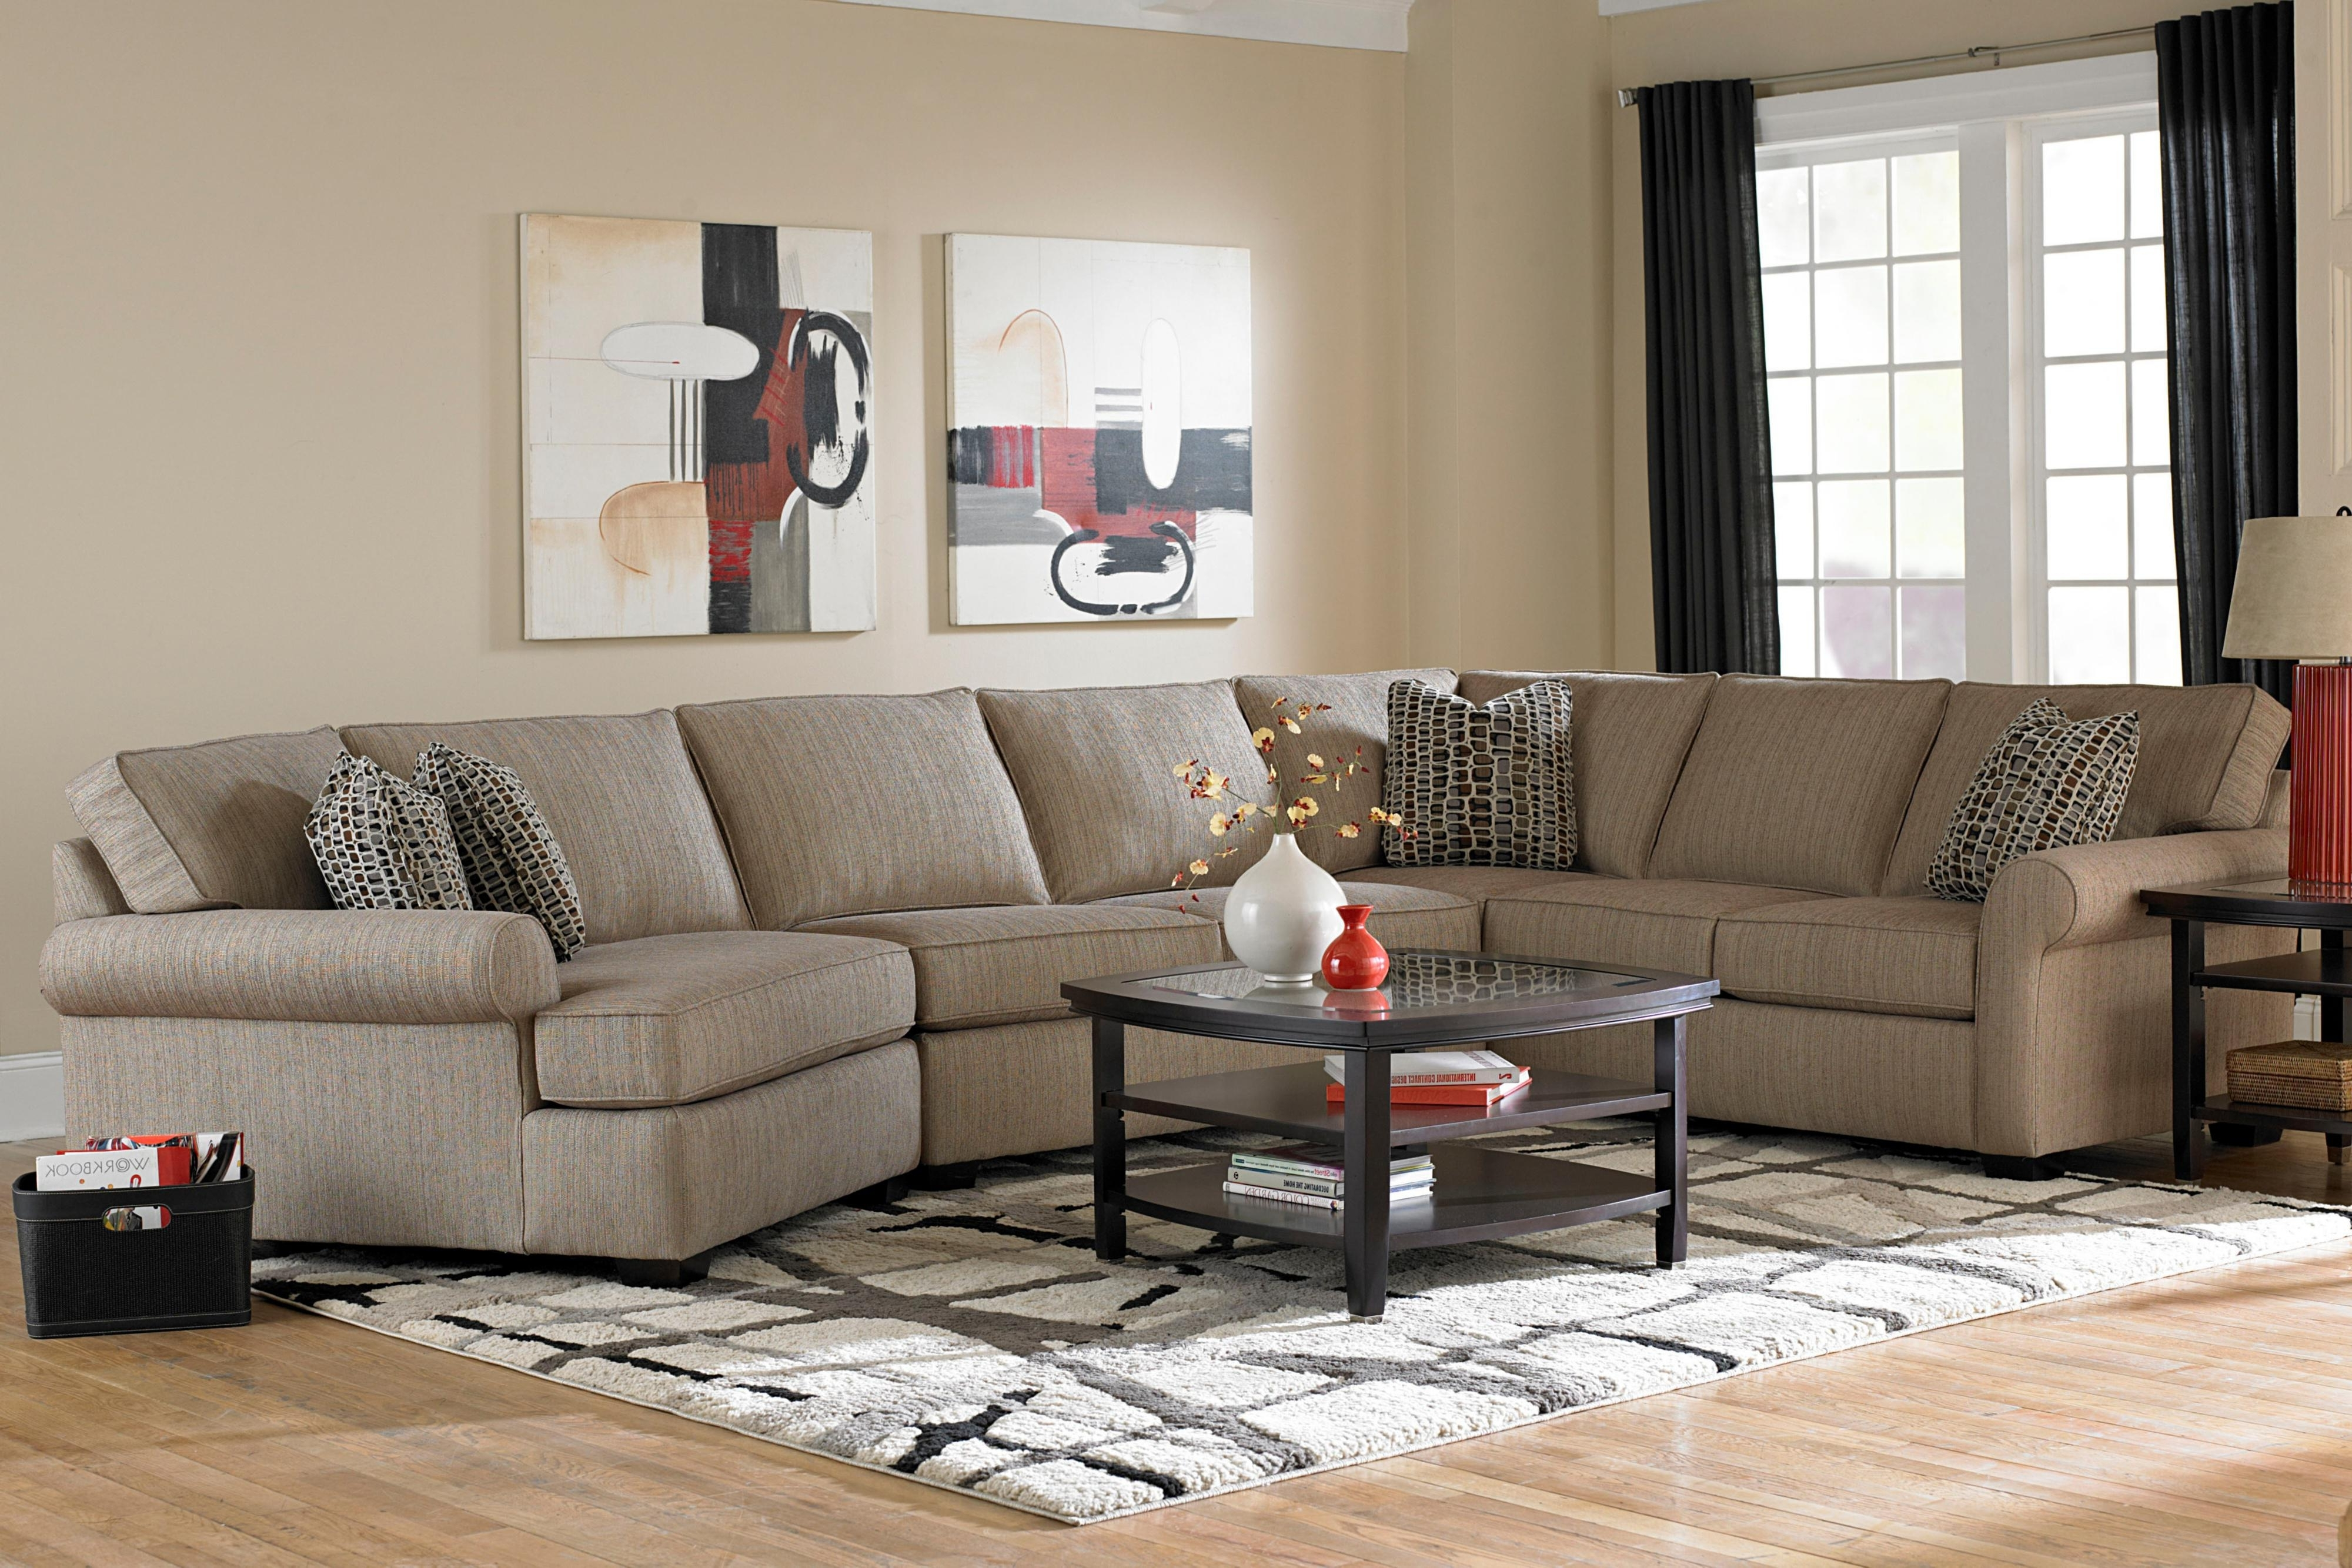 Lancaster Pa Sectional Sofas Intended For Fashionable Broyhill Furniture Ethan Transitional Sectional Sofa With Right (View 3 of 15)